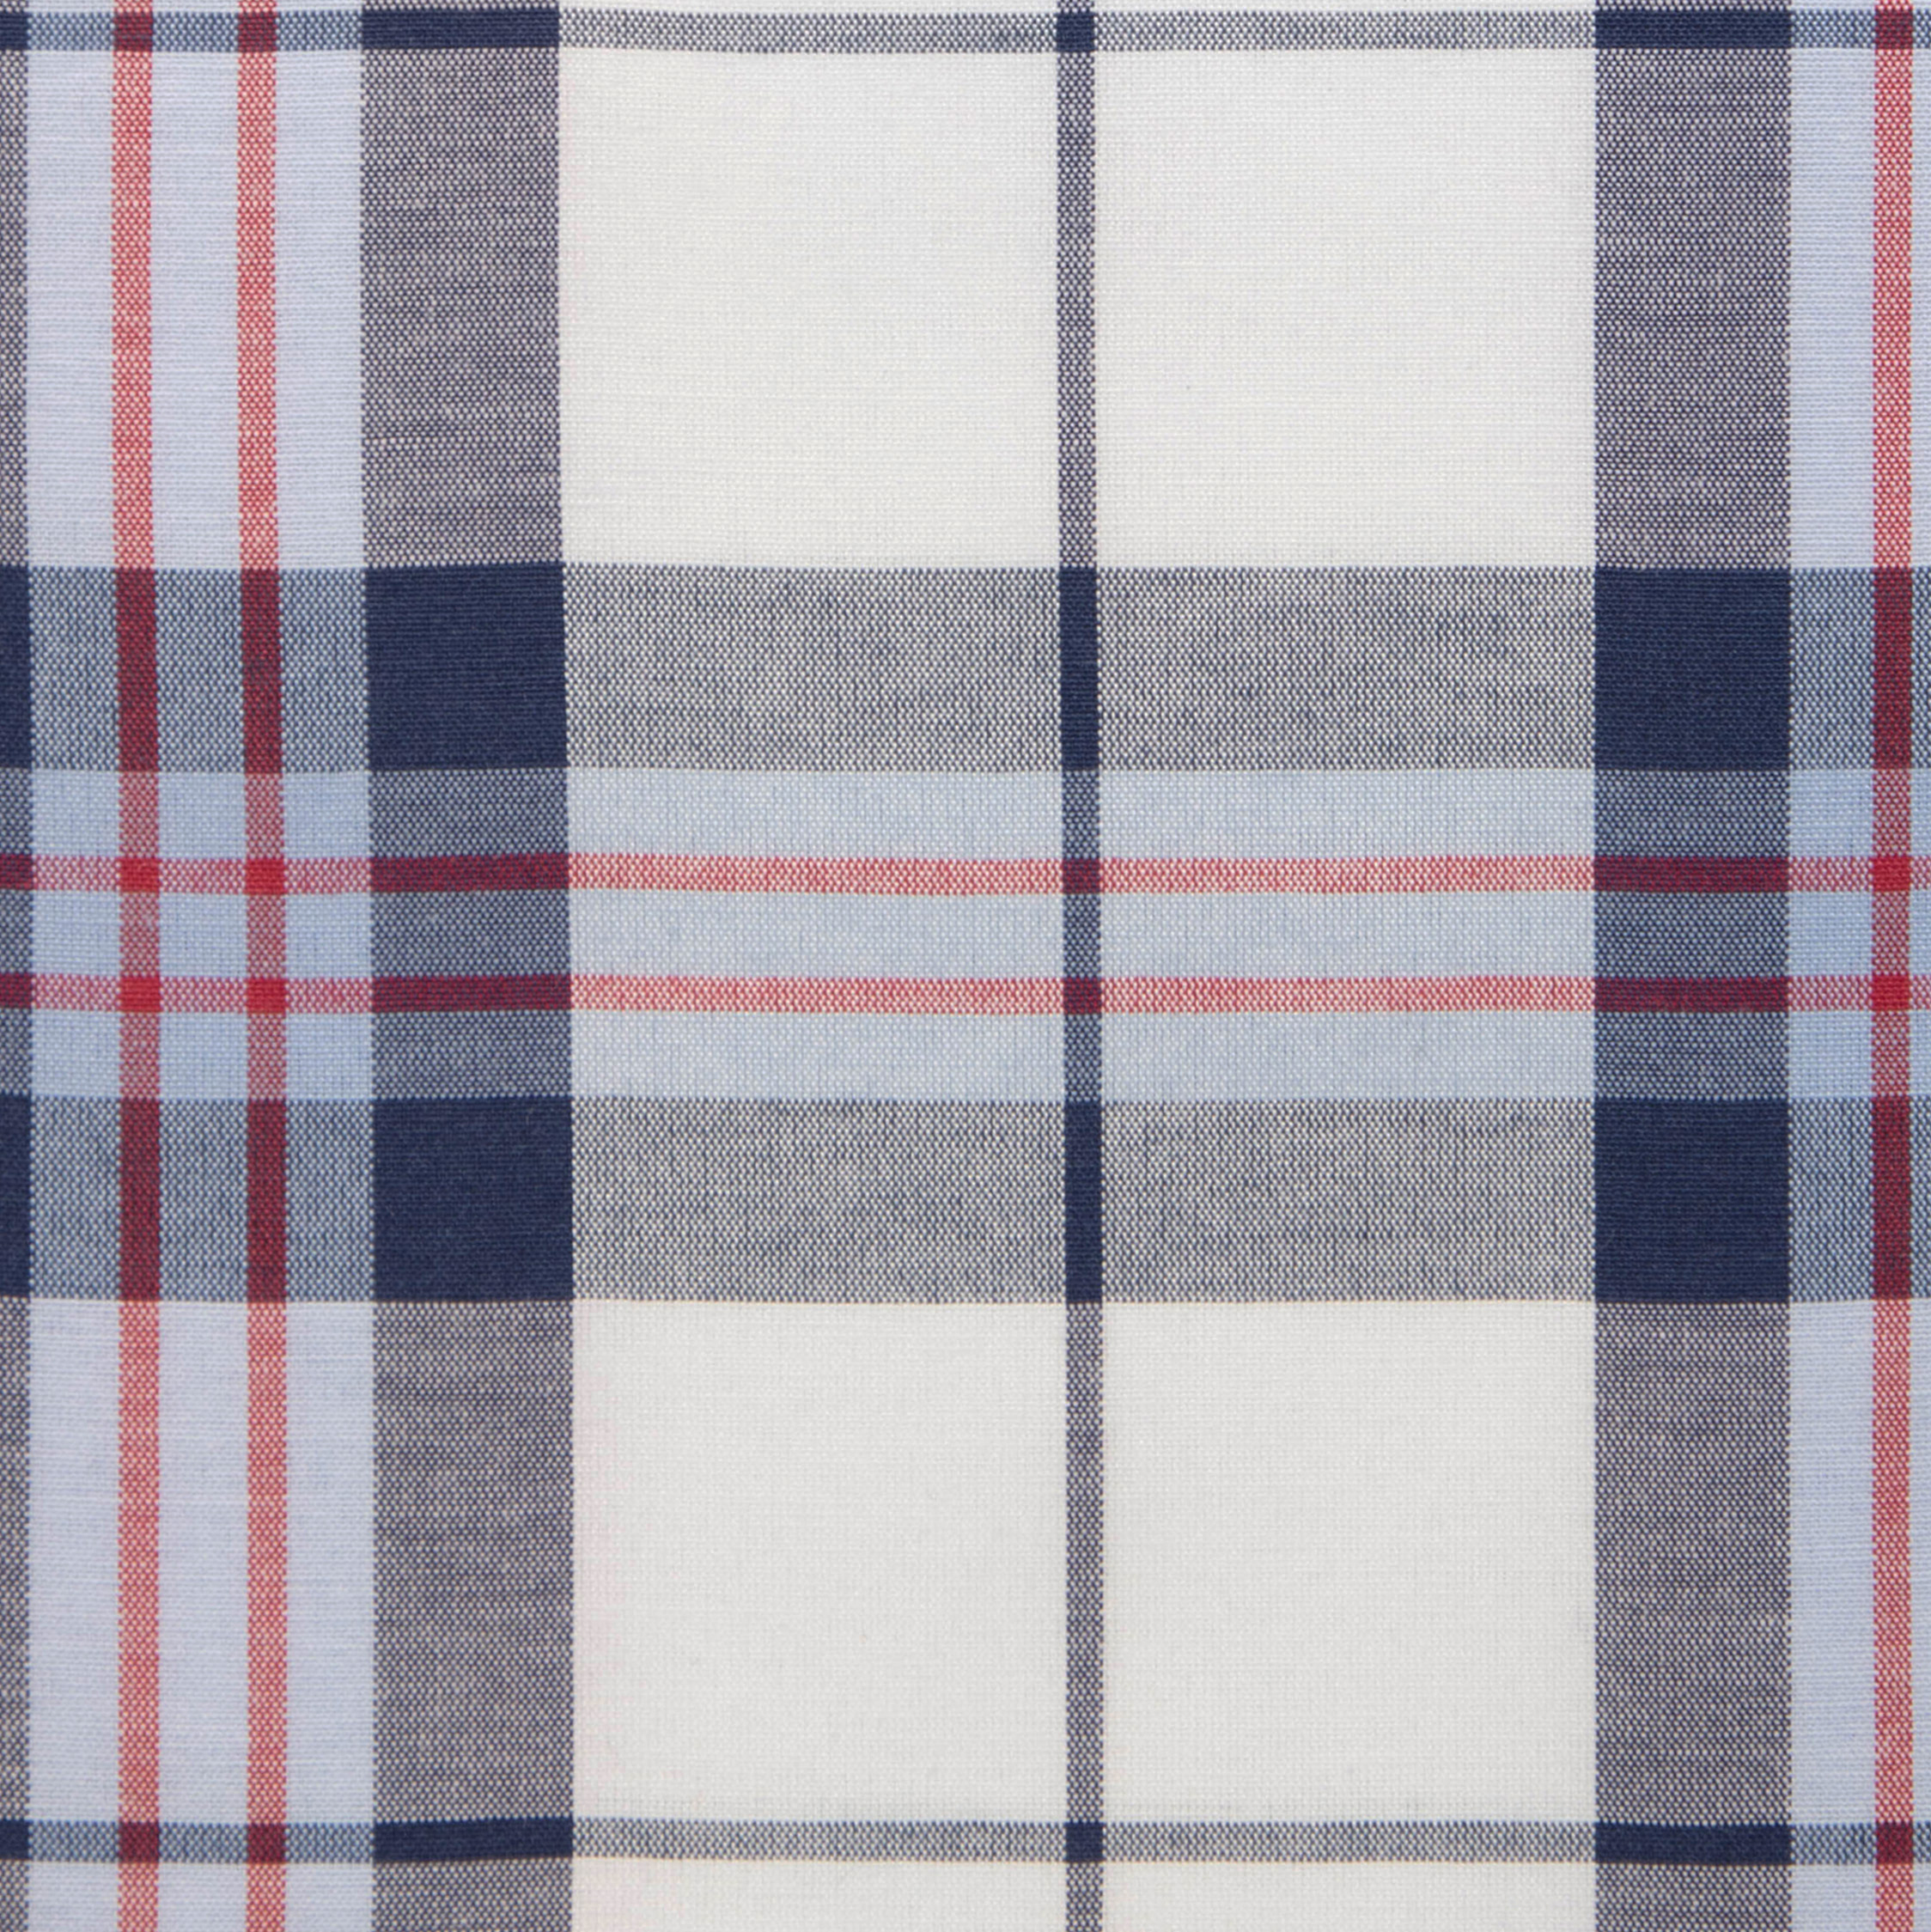 Buy tailor made shirts online - Texas Country Checks (CLEARANCE) - Black, Pale Blue, Red Check